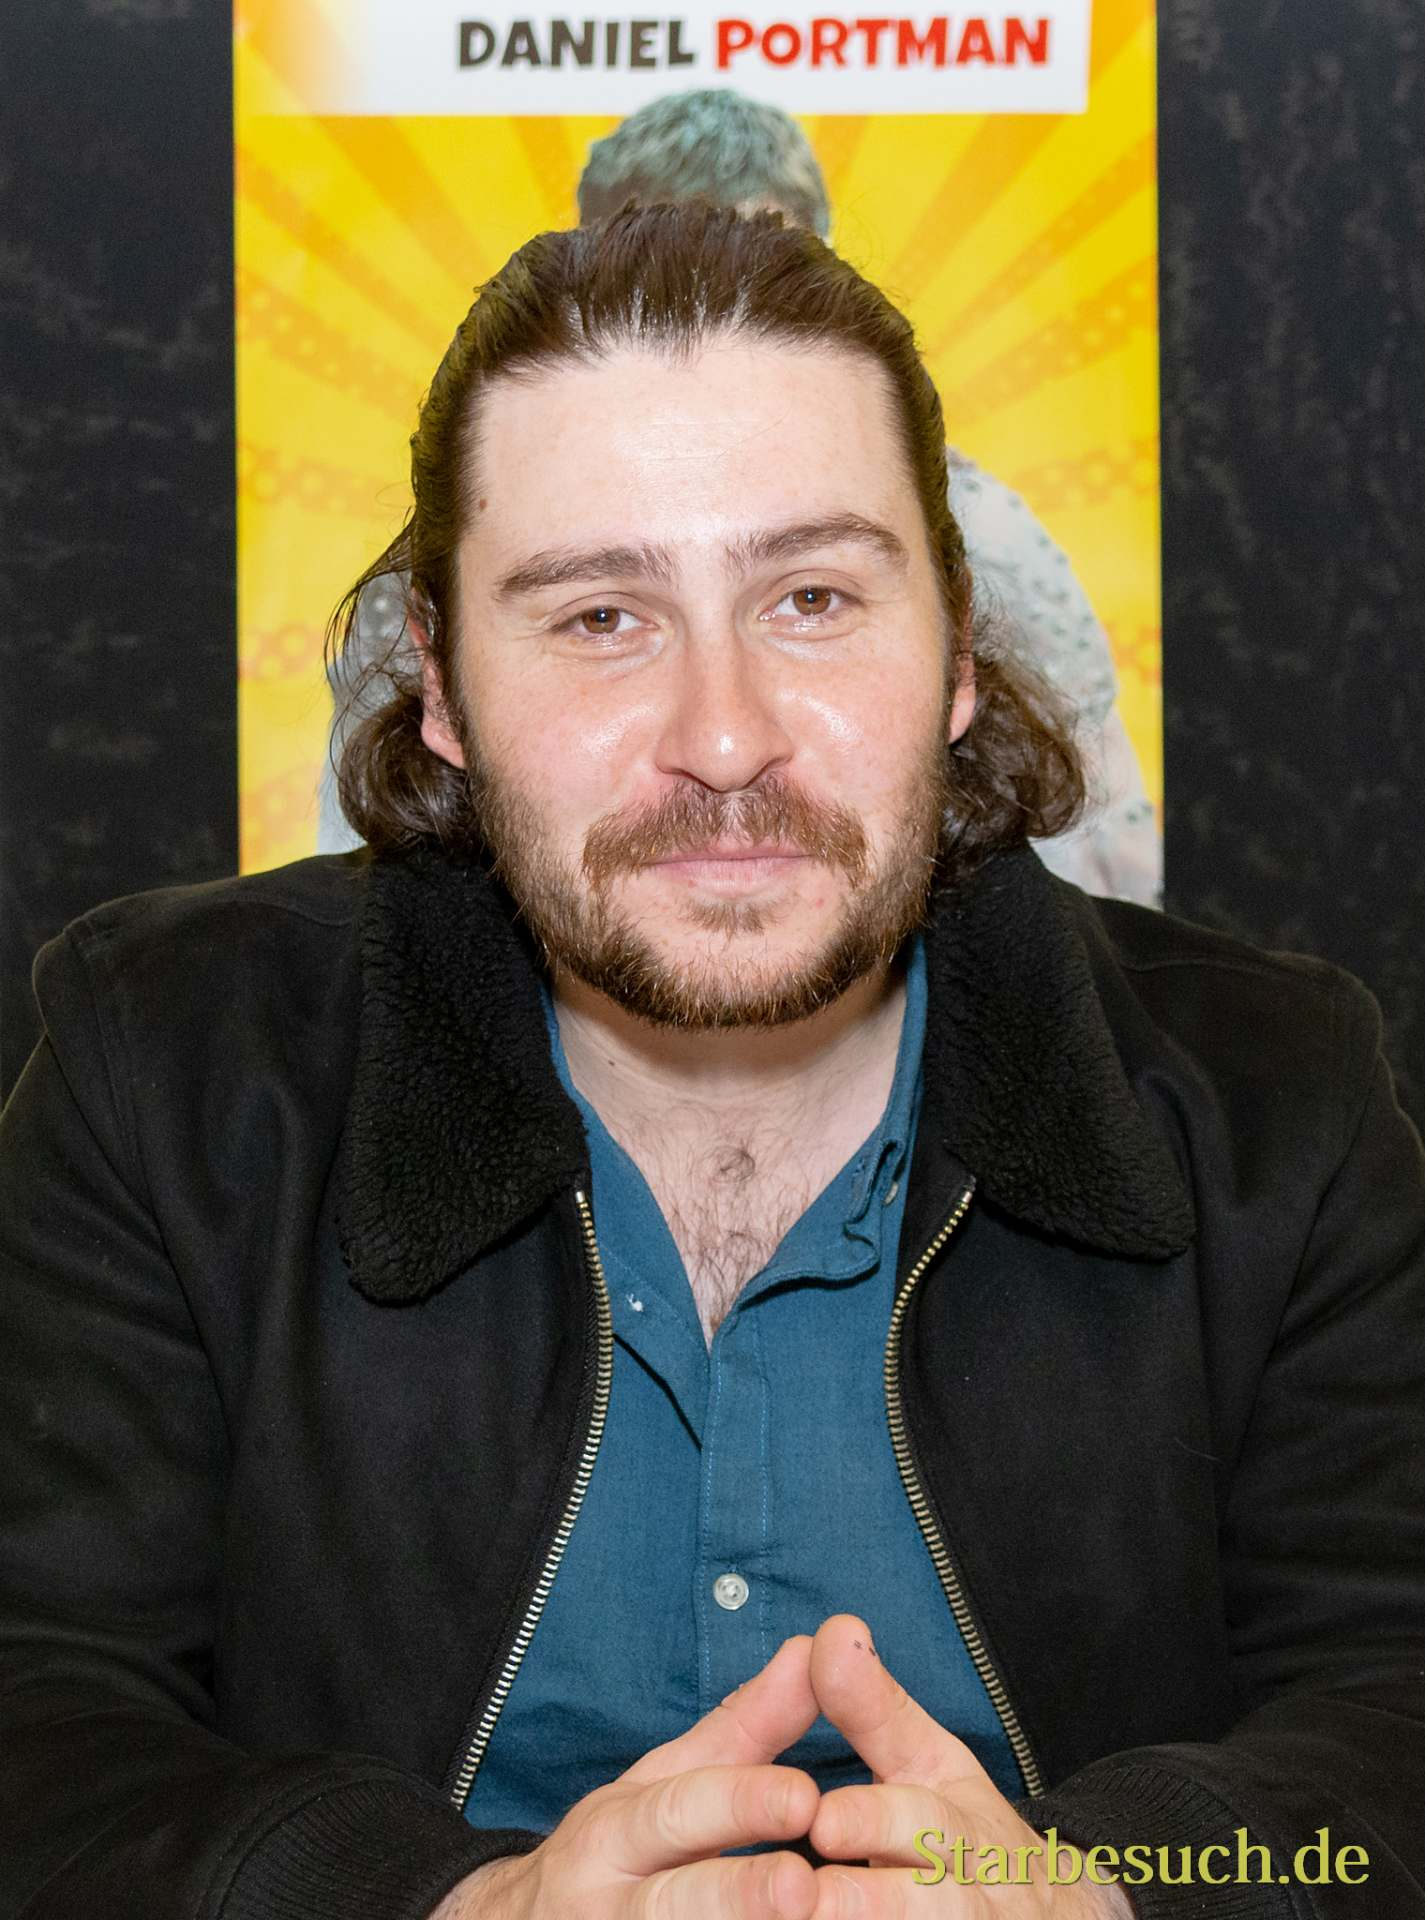 DORTMUND, GERMANY - December 1st 2018: Daniel Portman (*1992, Scottish actor) at German Comic Con Dortmund, a two day fan convention